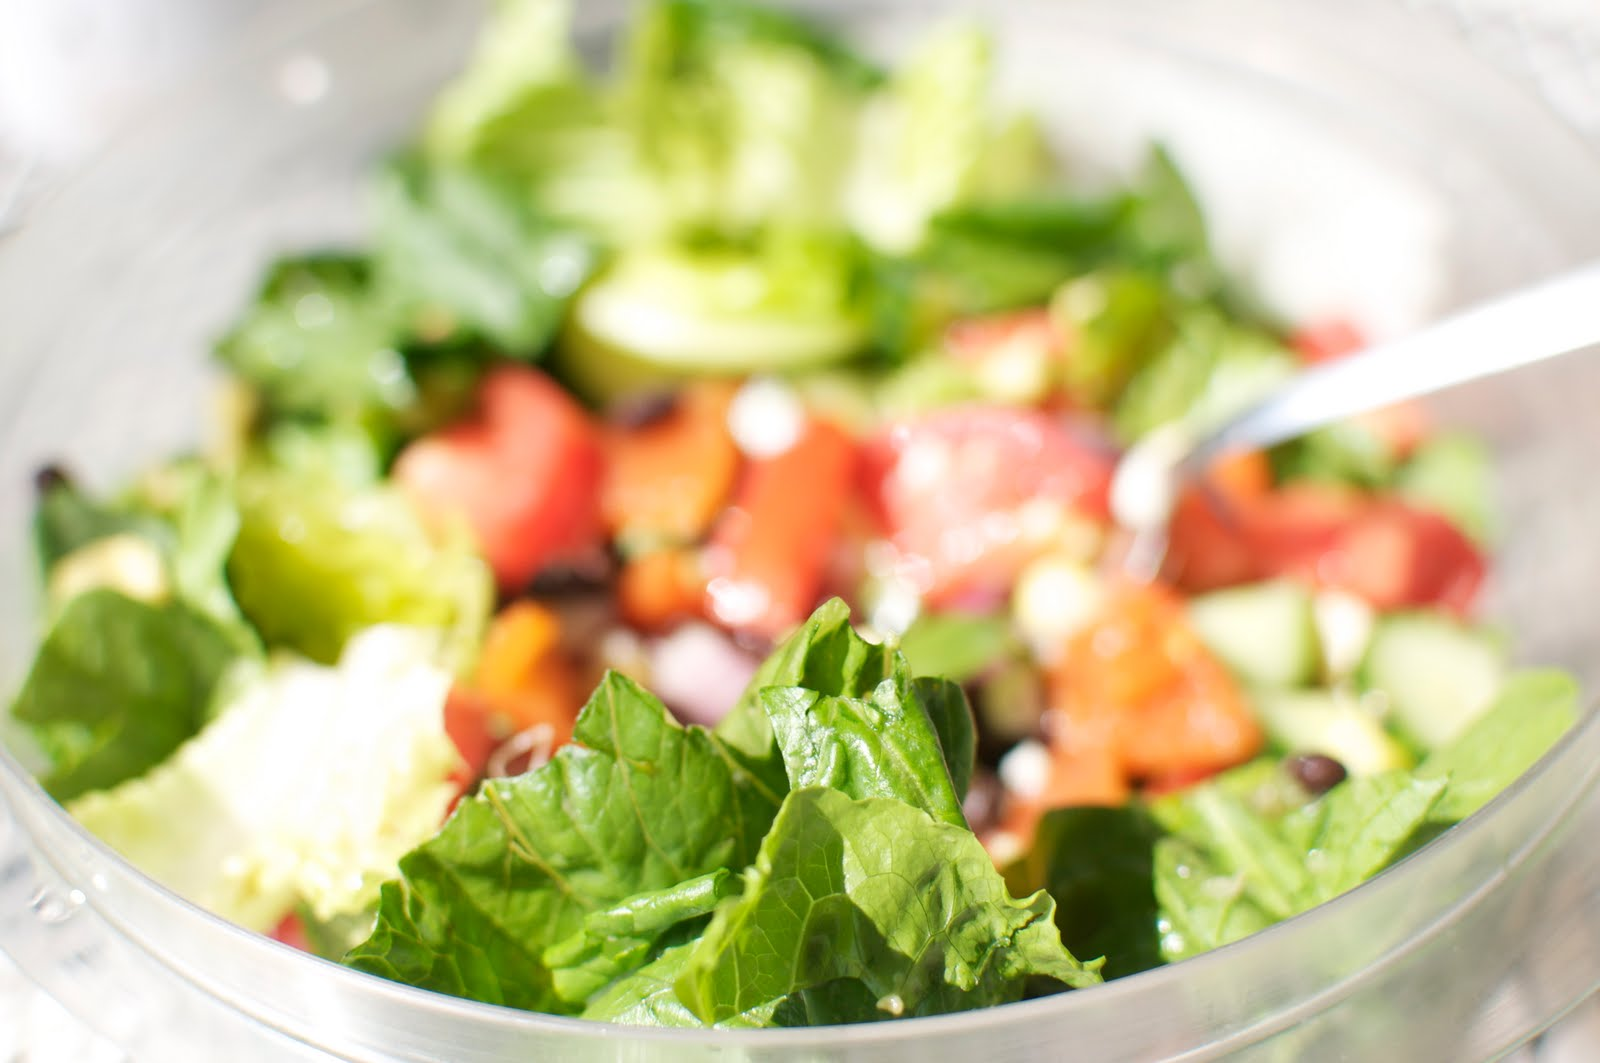 Where to Eat Vegan: Chop Mexican Salad with Cilantro Lime Dressing